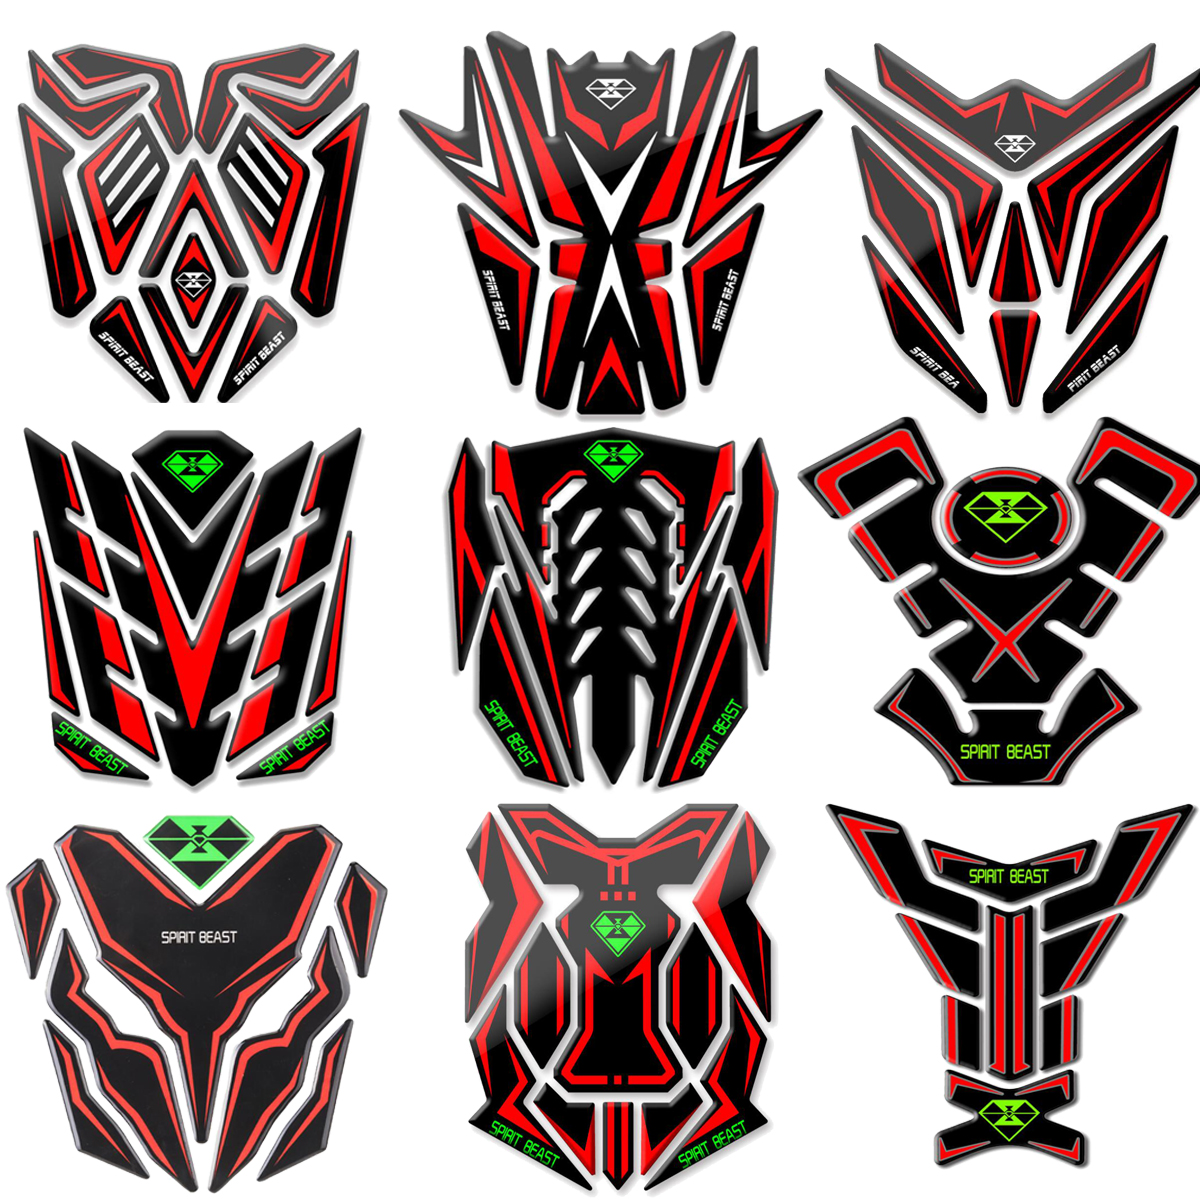 Reflective 3D Motorcycle Sticker Moto Gas Fuel Tank Protector Pad Cover Decoration Decals For Honda For Yamaha Etc